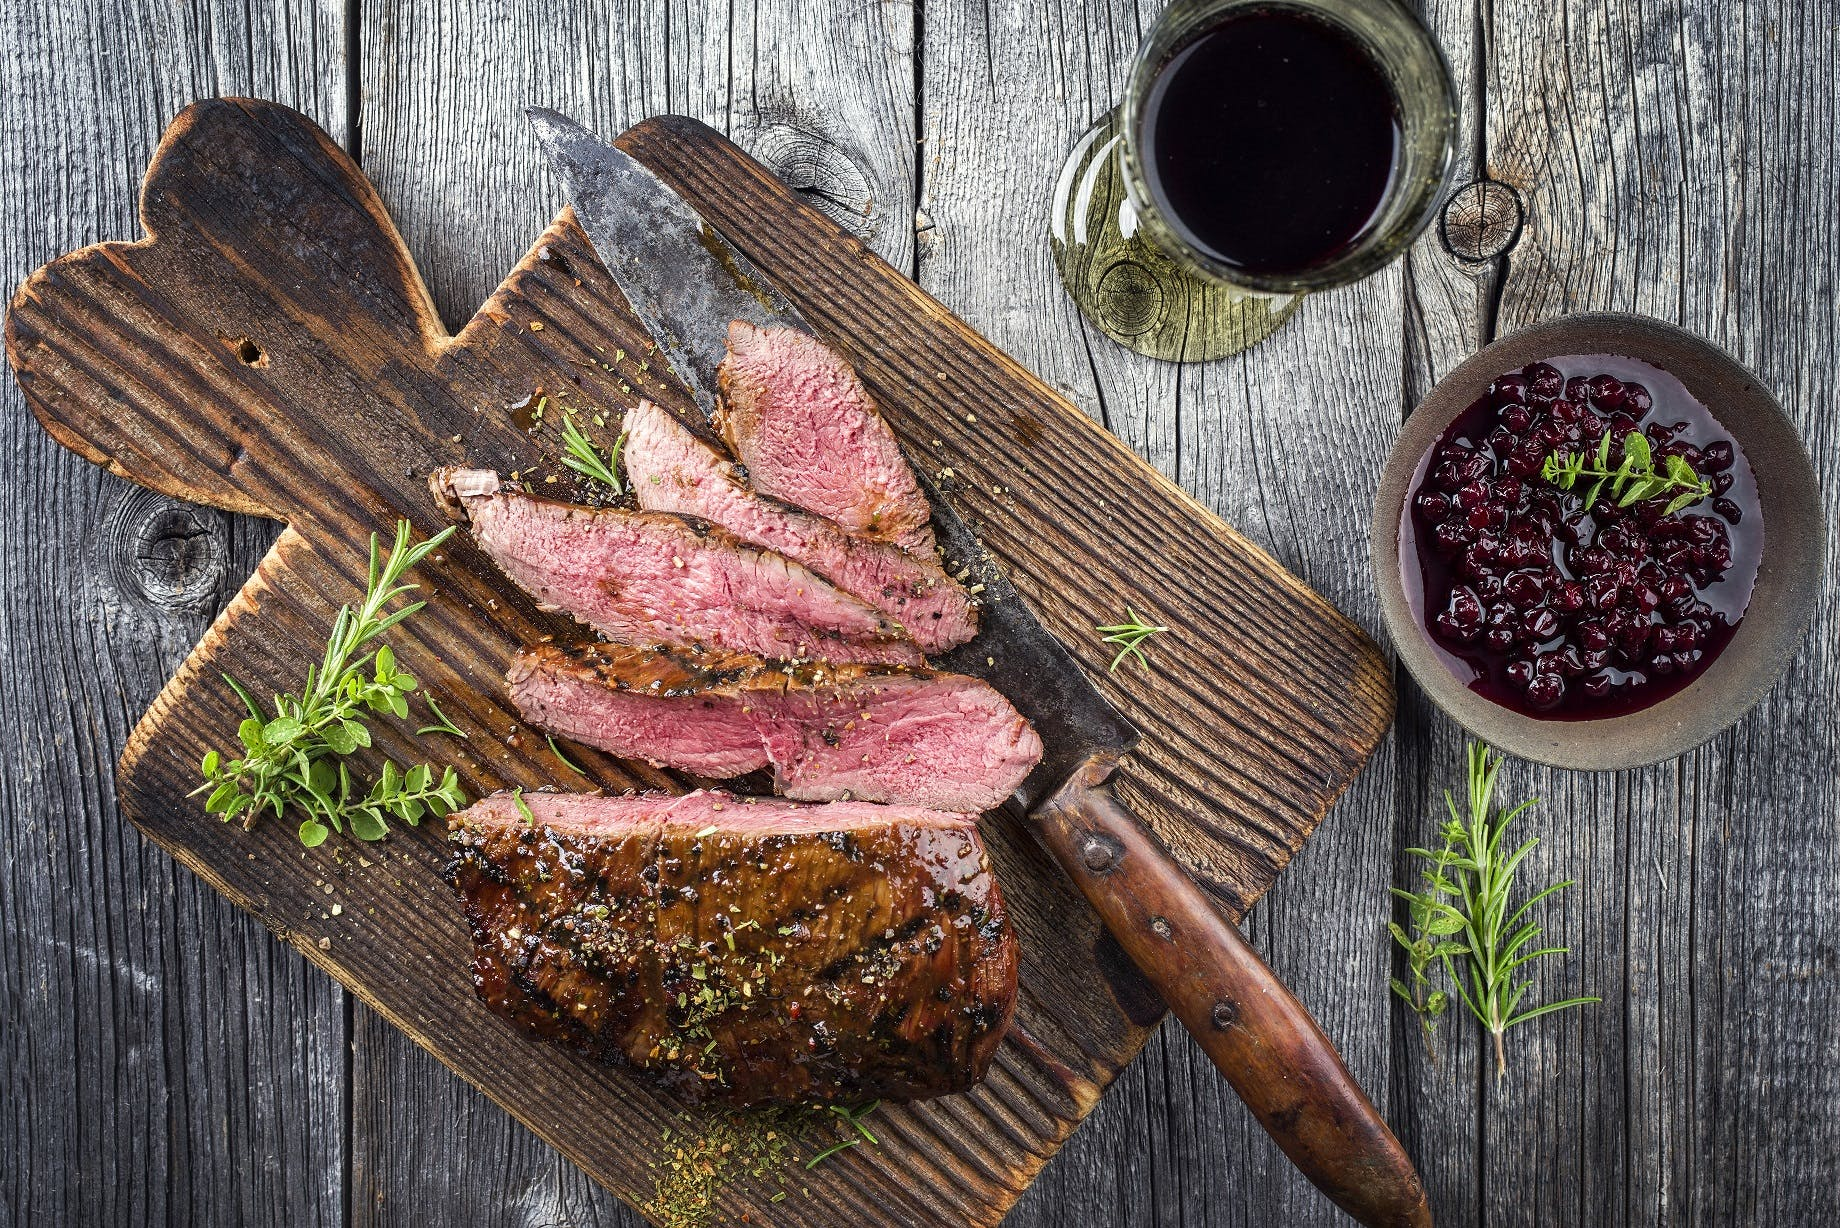 Venison with Lingonberry Sauce